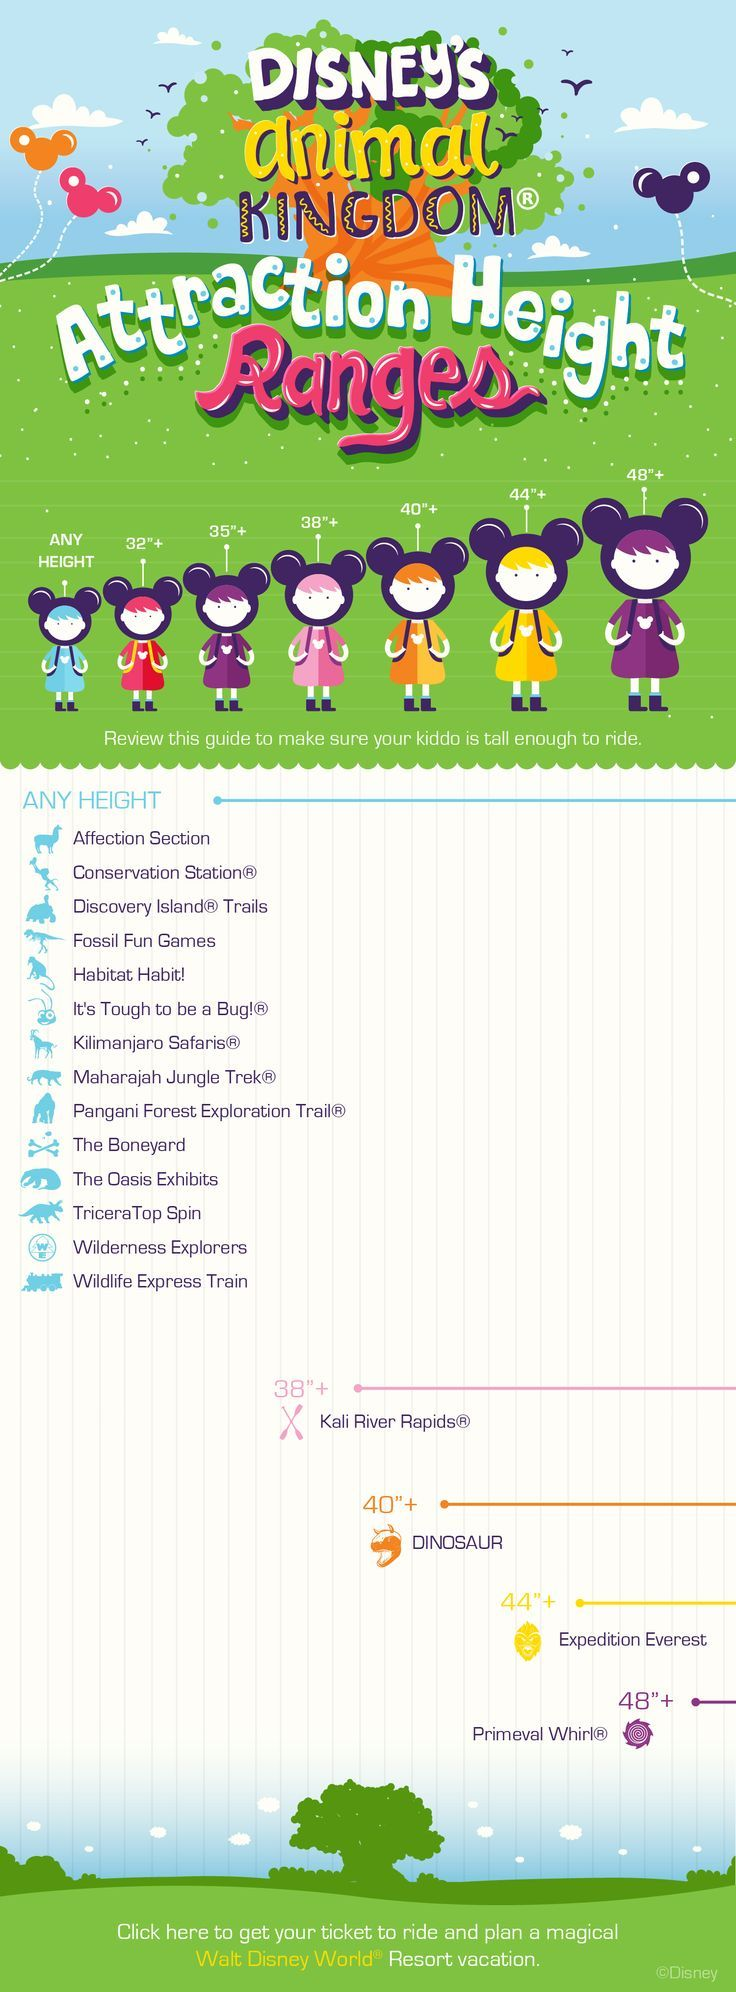 he official Disney Parks Blog recently published the list of height requirements for attractions!